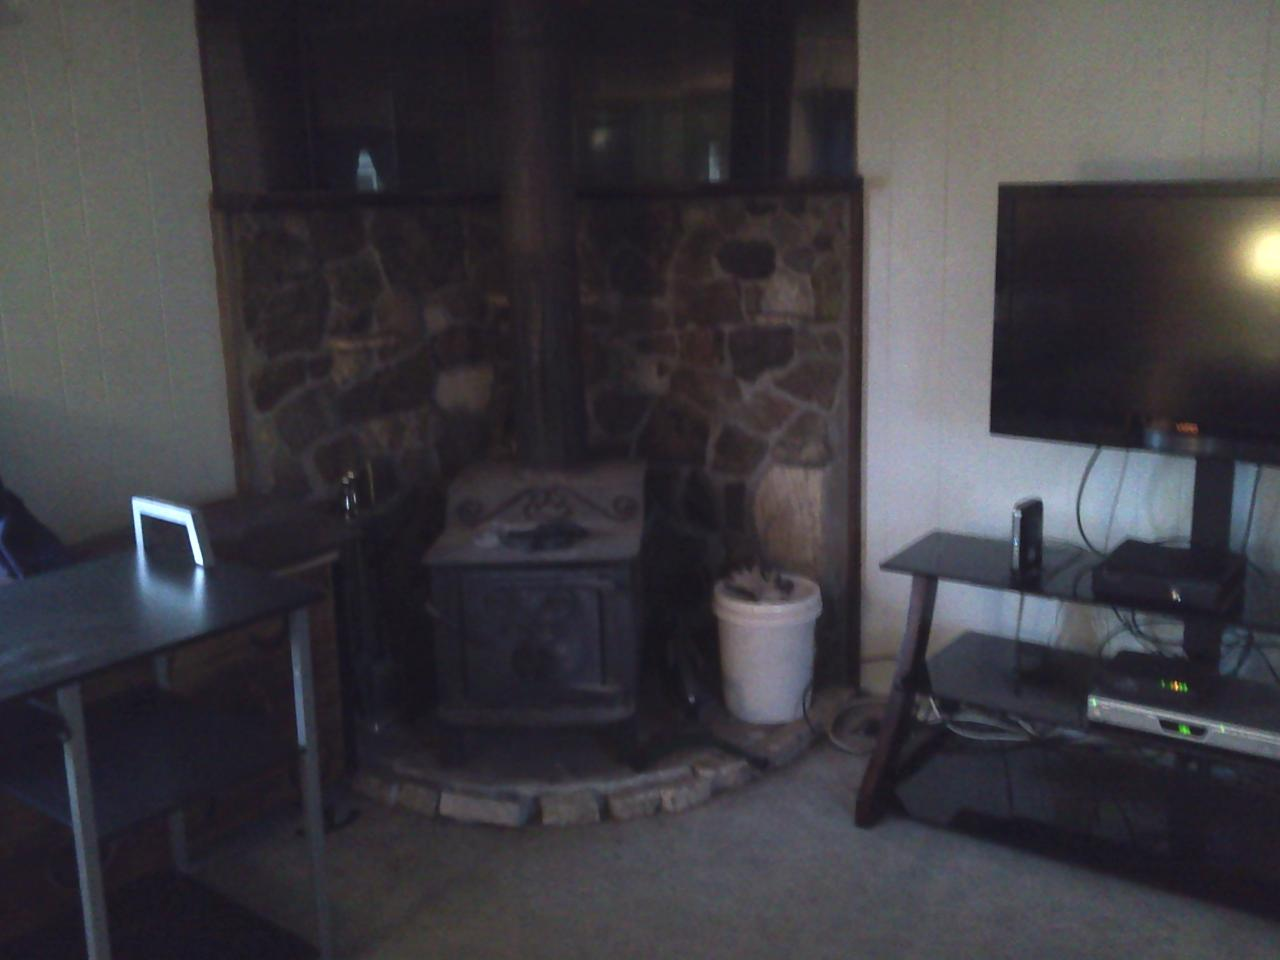 suggestions for making a fireplace into a rocket mass heater in a